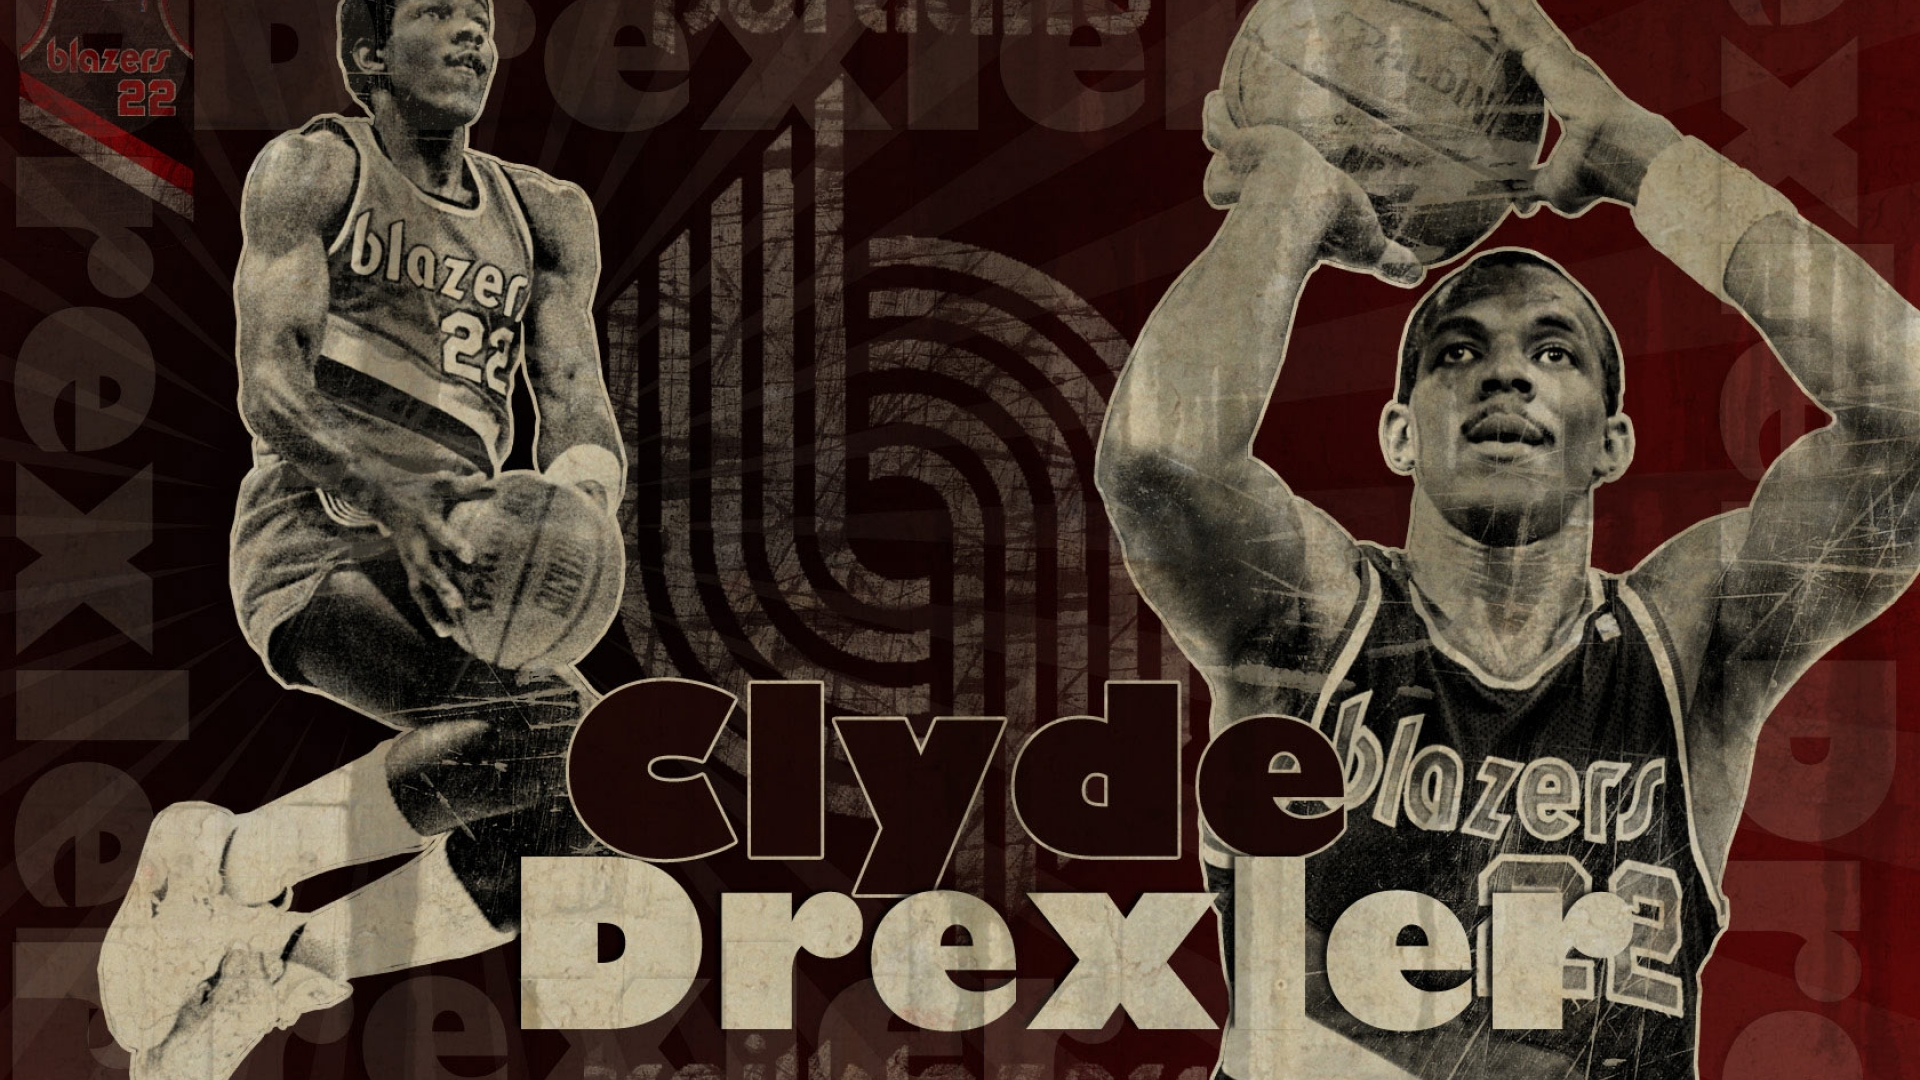 Clyde Drexler Blazers basket ball wallpaper